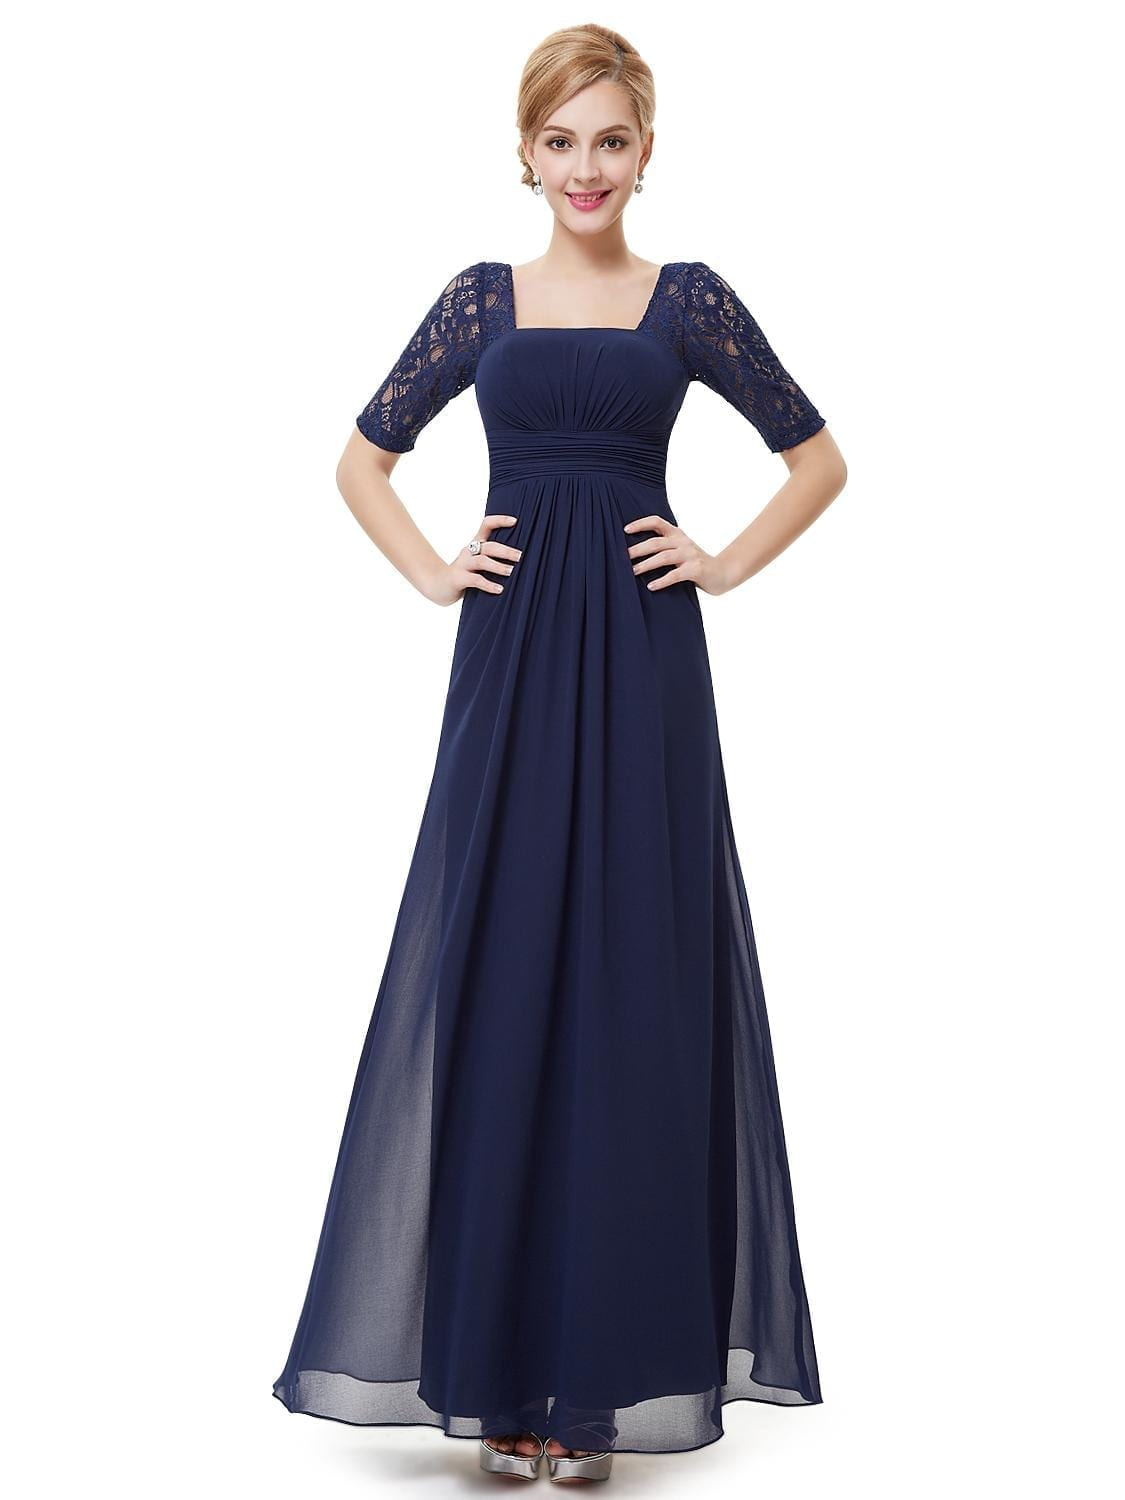 Sexy-fashion-navy-blue-lace-square-neckline-long-prom-evening-dress